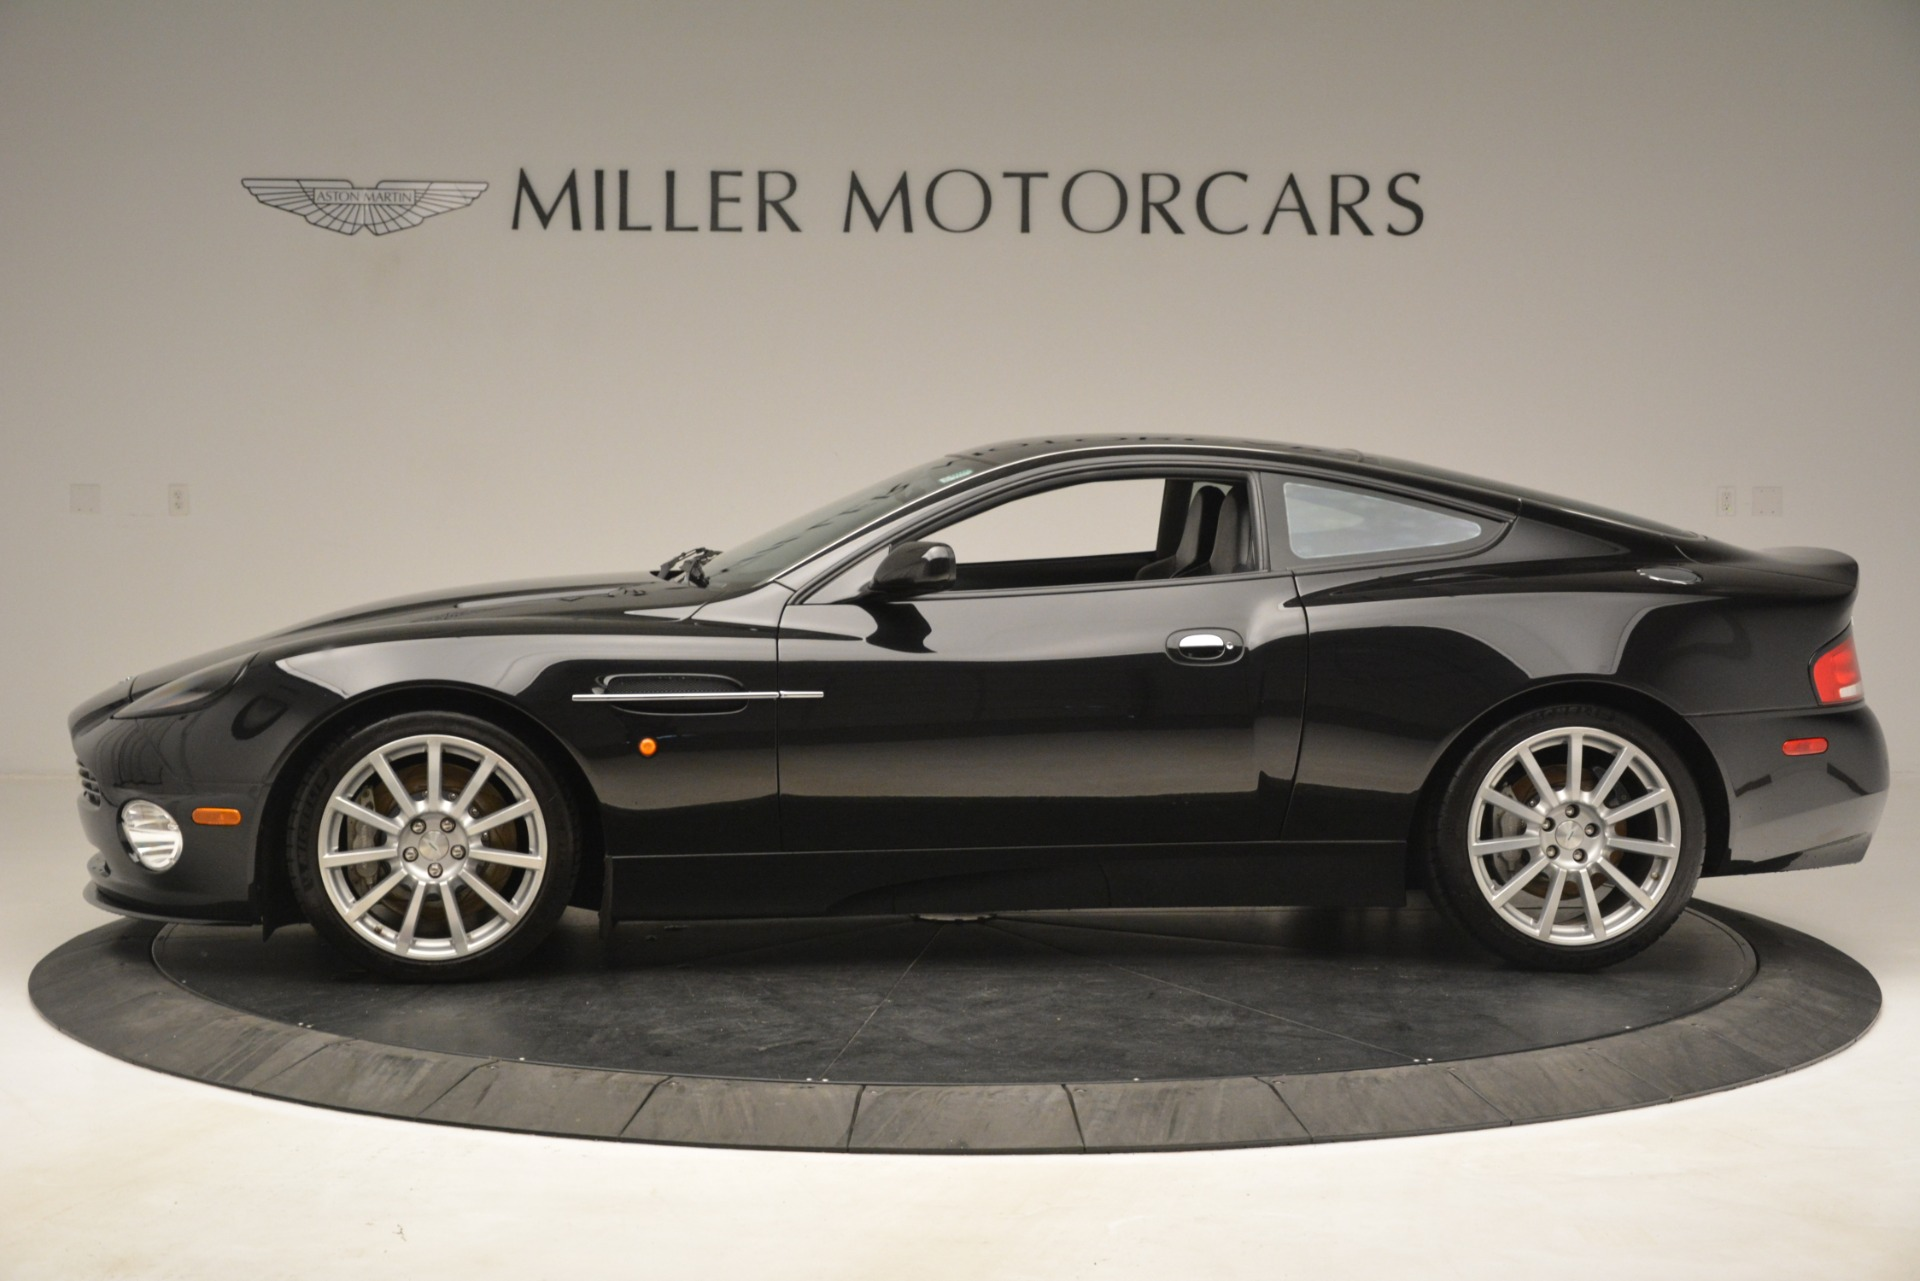 Used 2005 Aston Martin V12 Vanquish S Coupe For Sale In Greenwich, CT 3218_p3